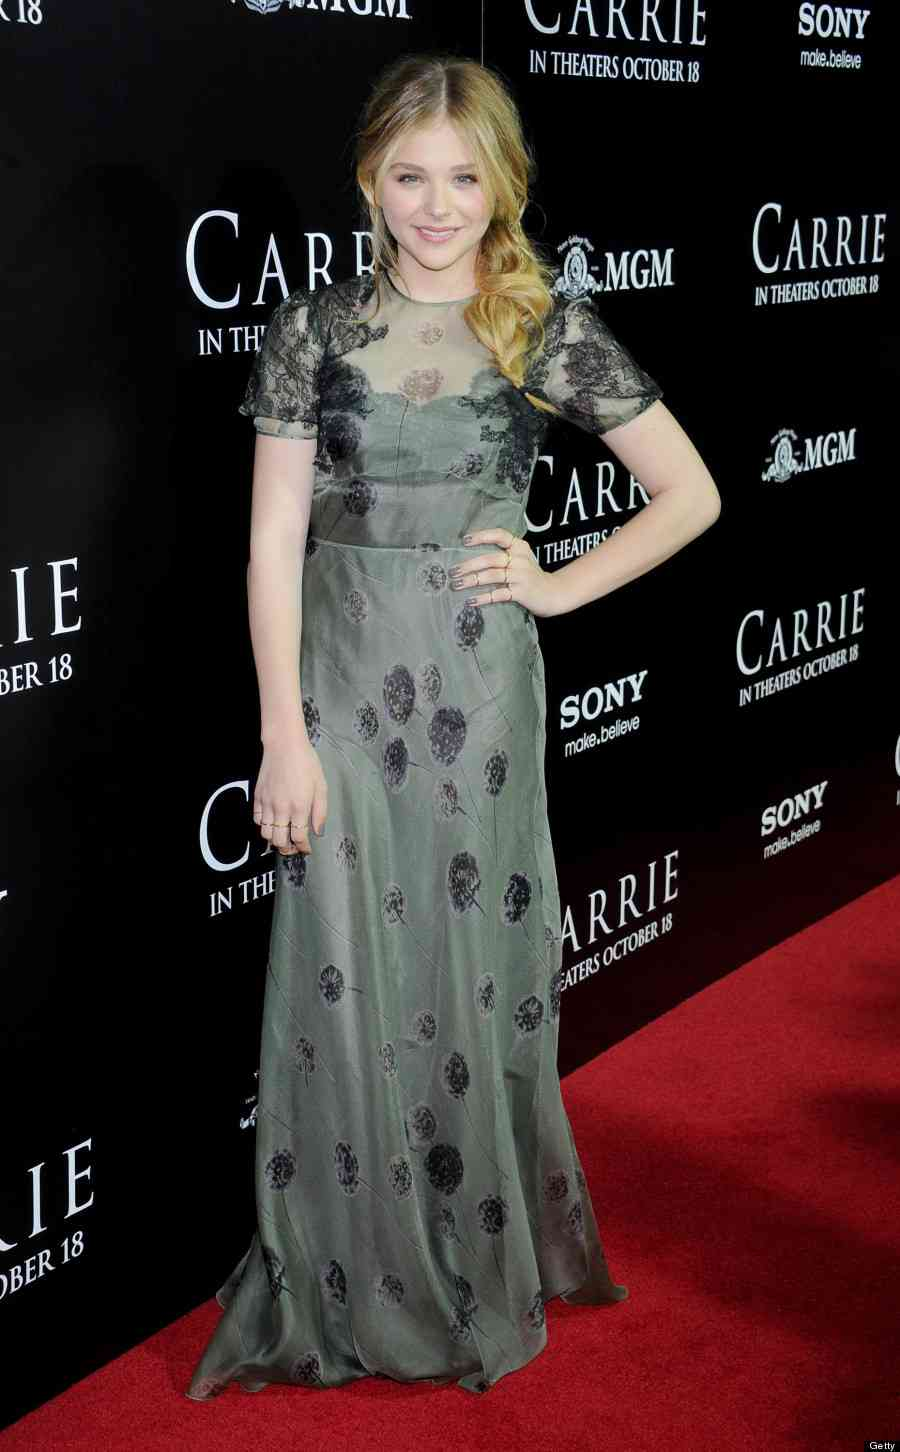 """Carrie"" - Los Angeles Premiere - Arrivals"